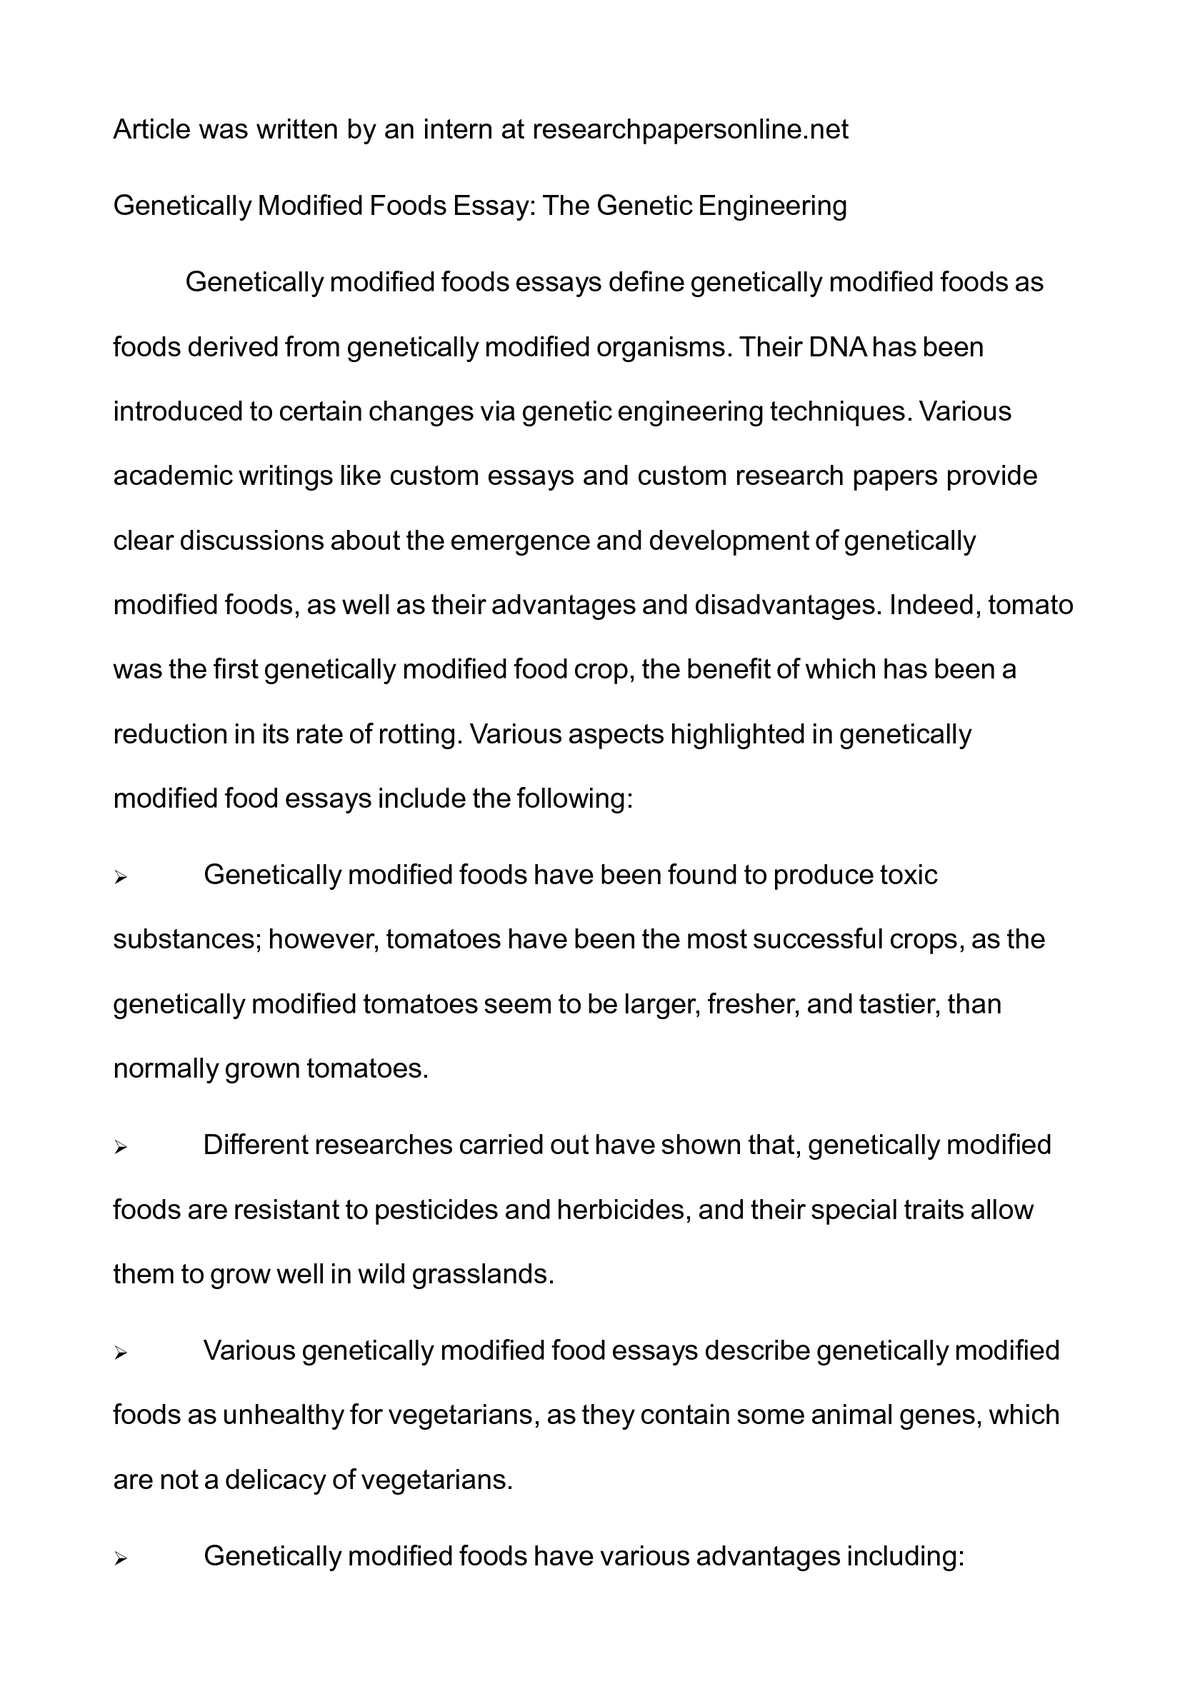 004 Essay About Genetic Engineering P1 Striking Disadvantages Of Argumentative On Human Persuasive Full